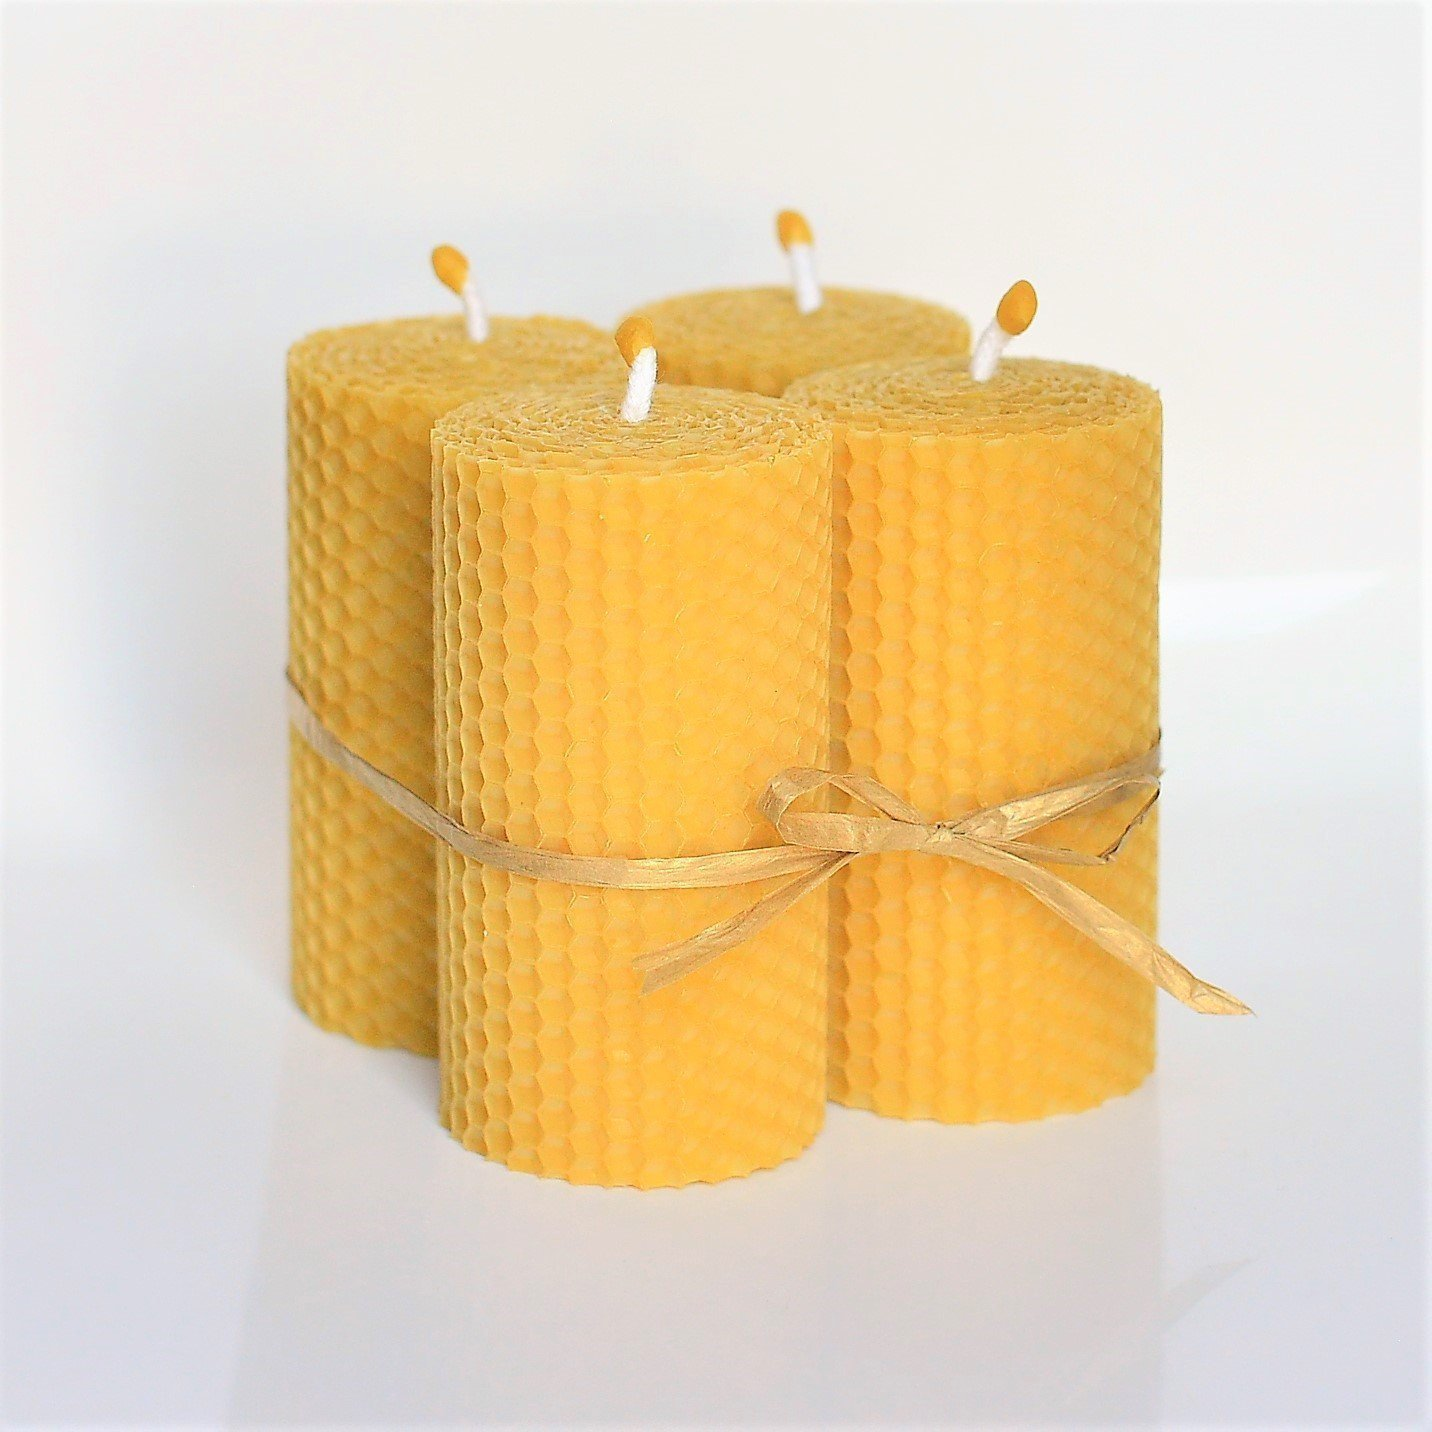 100% Beeswax Pillar Candles Set of 4 Size 4 x 2 in (10 x 5 cm) Hand Rolled Natural and Lovely Honey Scent 100% Handmade